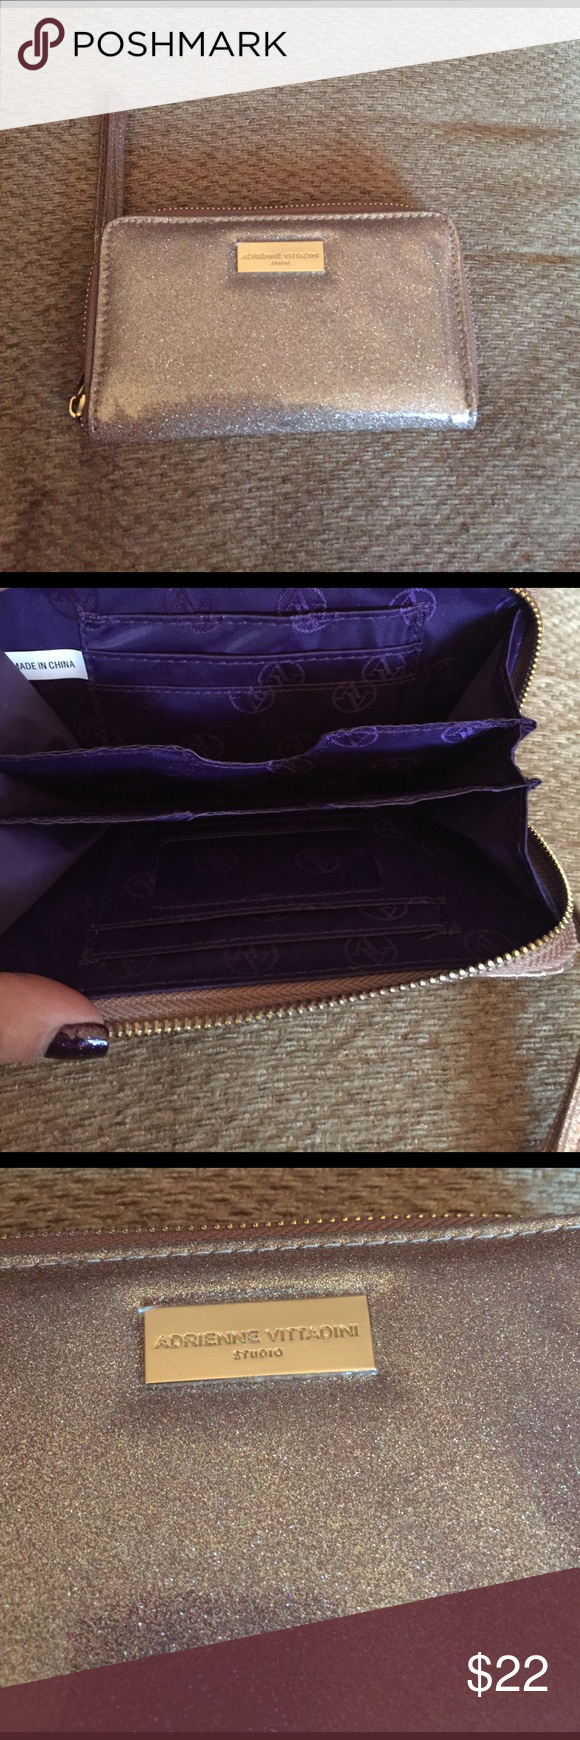 Patent leather glitter wristlet- NWOT Brand new never used. Still has plastic over the name brand plate. Adrienne Vittadini. Purple interior with lots of pockets, i.d. Window and a place for cell phone. Wristlet arm band. Champagne colored glitter patent leather. Perfect condition Adrienne Vittadini Bags Clutches & Wristlets